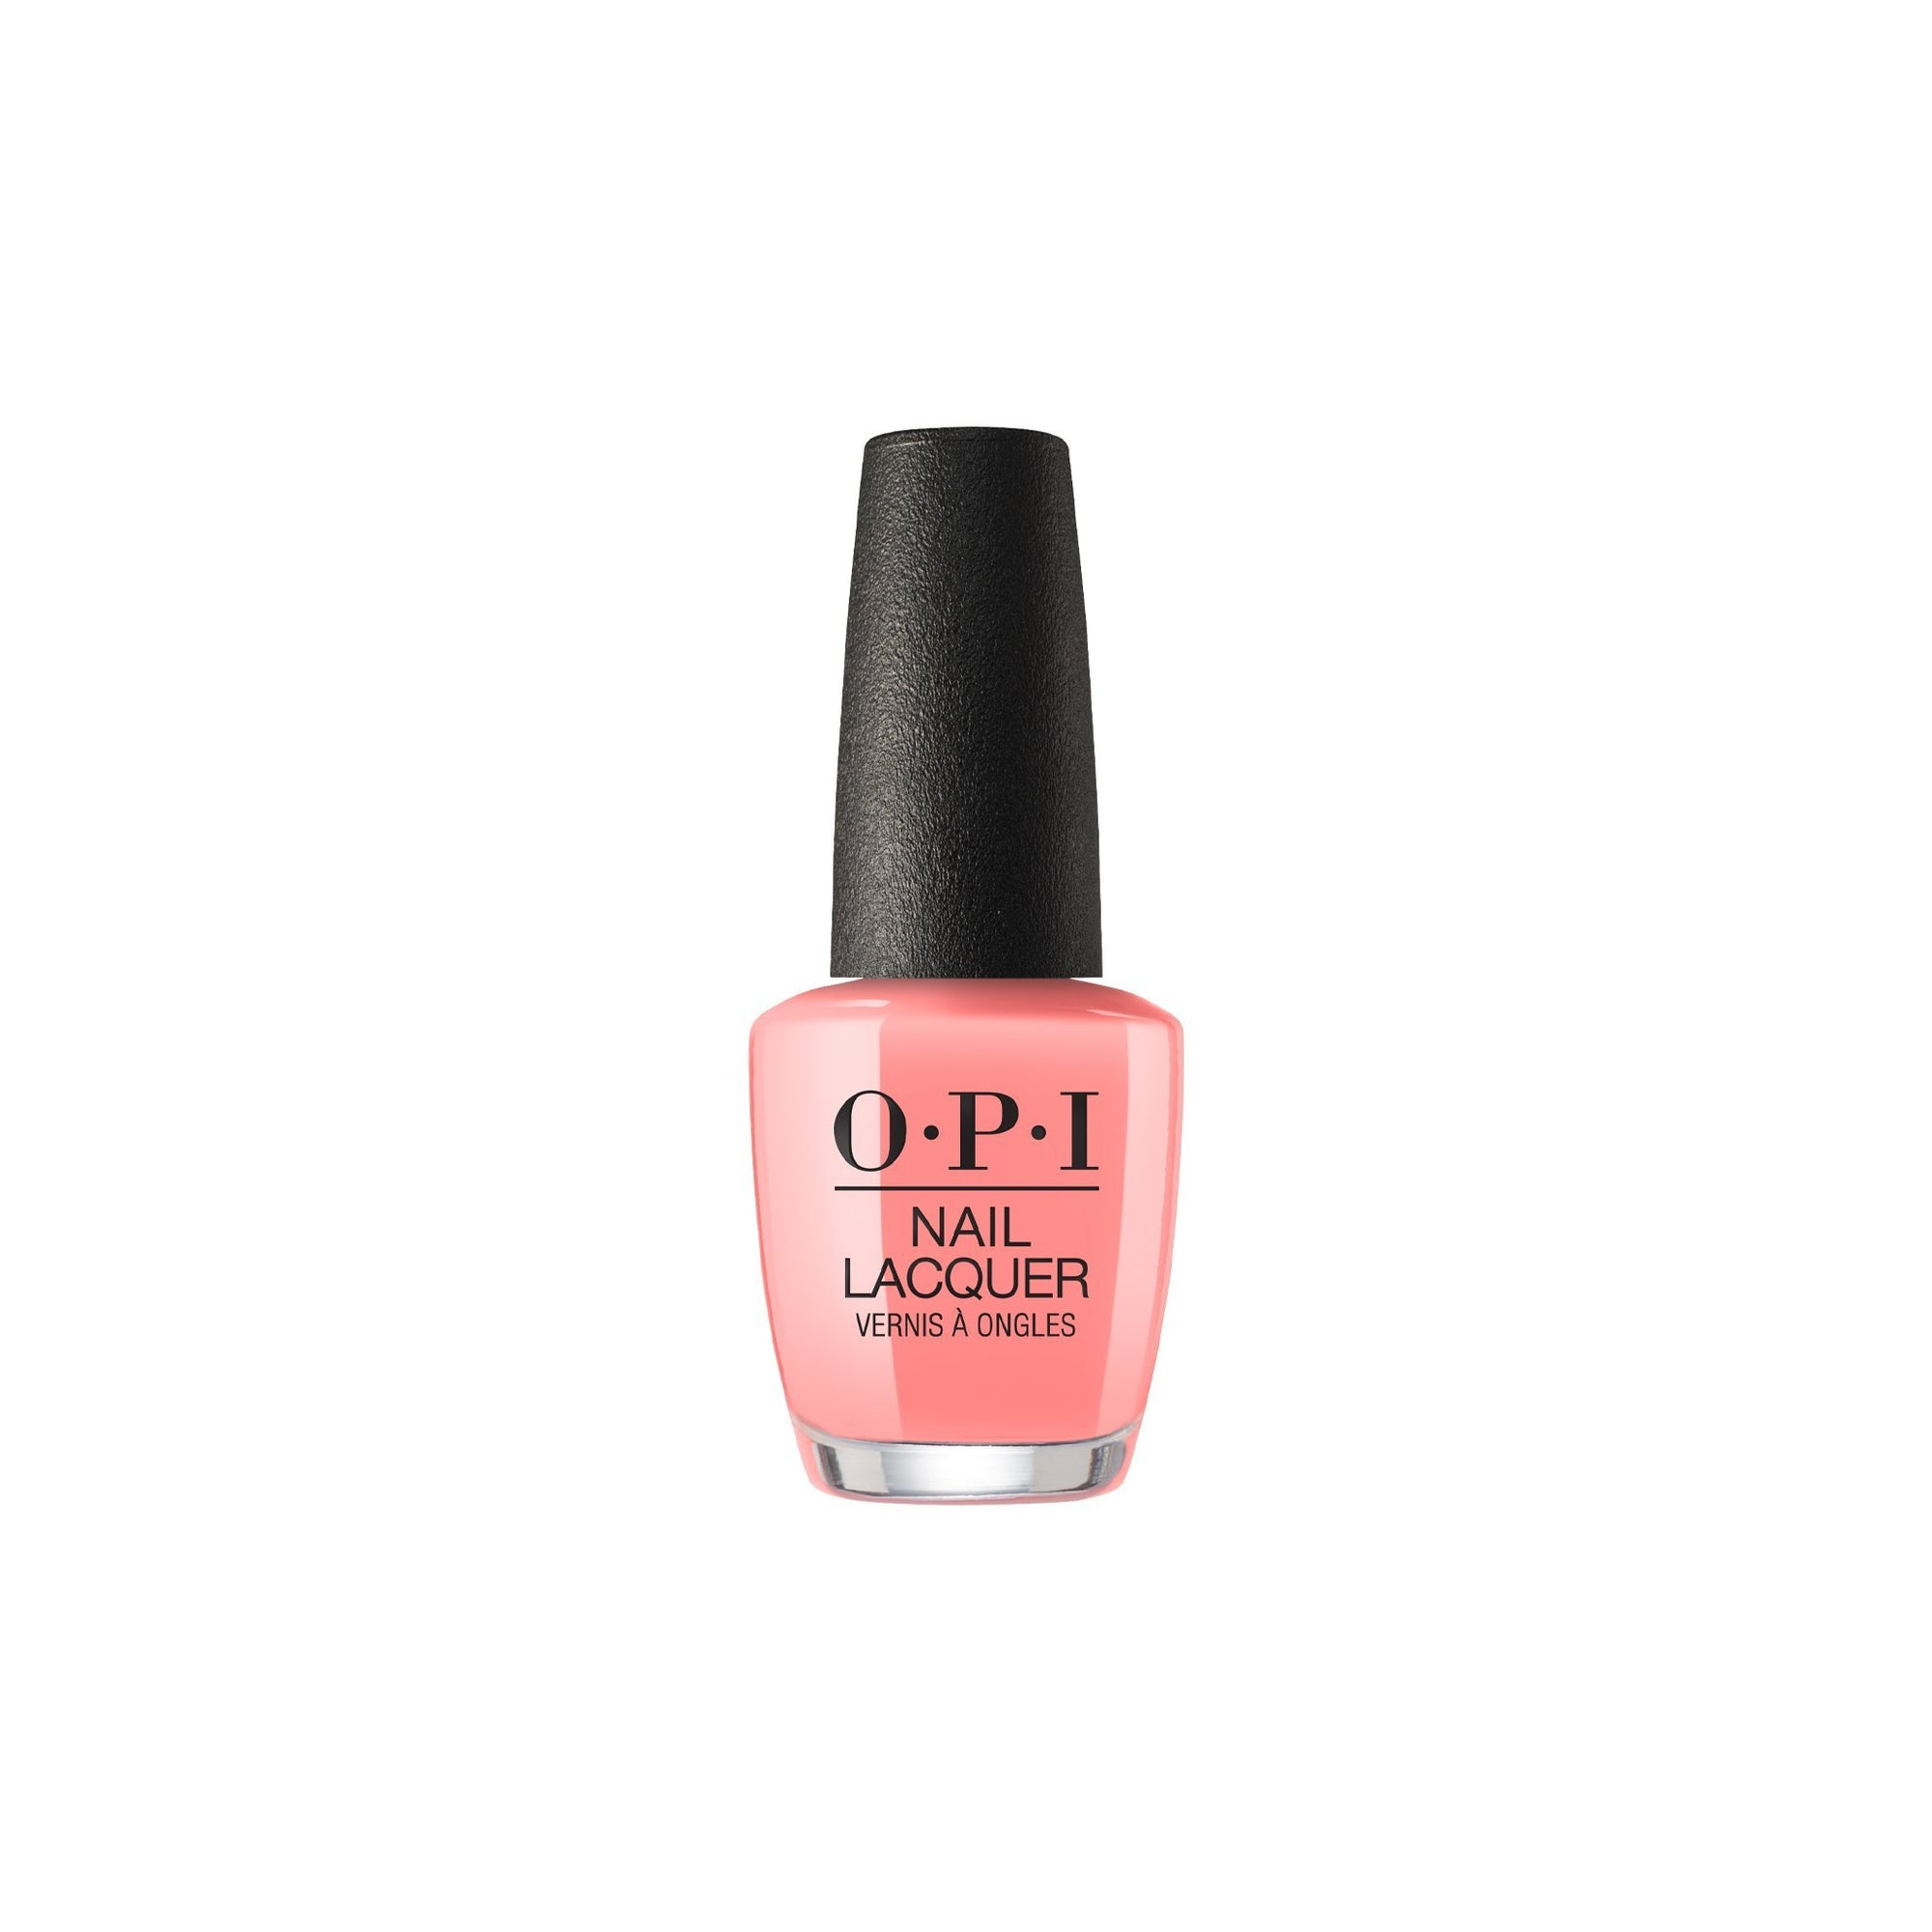 O.P.I Nail Lacquer - You'Ve Got Nata On Me